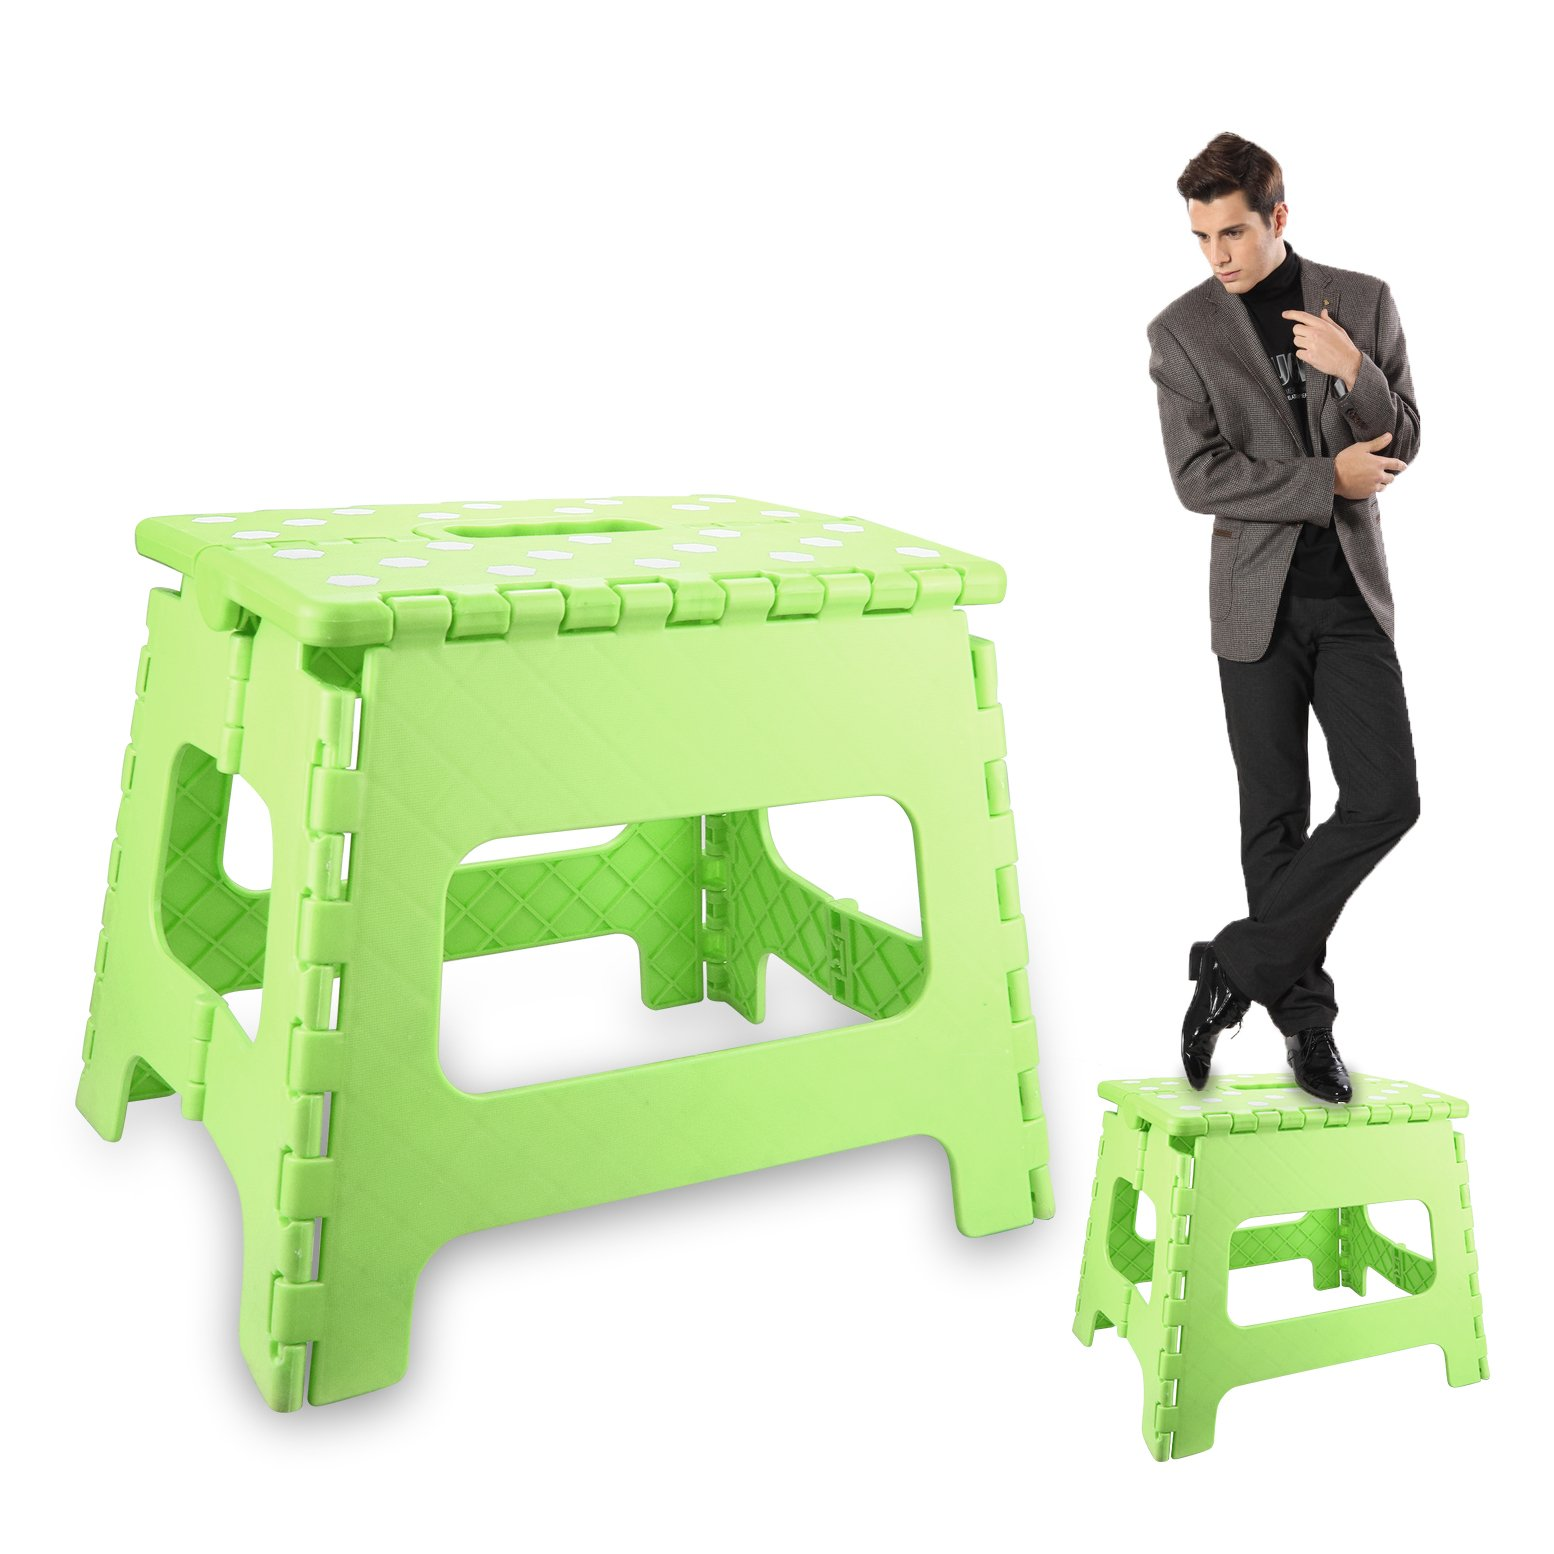 IAMGlobal Folding Step Stool - 13'' Wide Non-Slip Foldable Step Stool with Carrying Handle - Holds up to 300 Lb - Perfect for Kitchen, Bathroom, Bedroom For Kids Adults (Green)